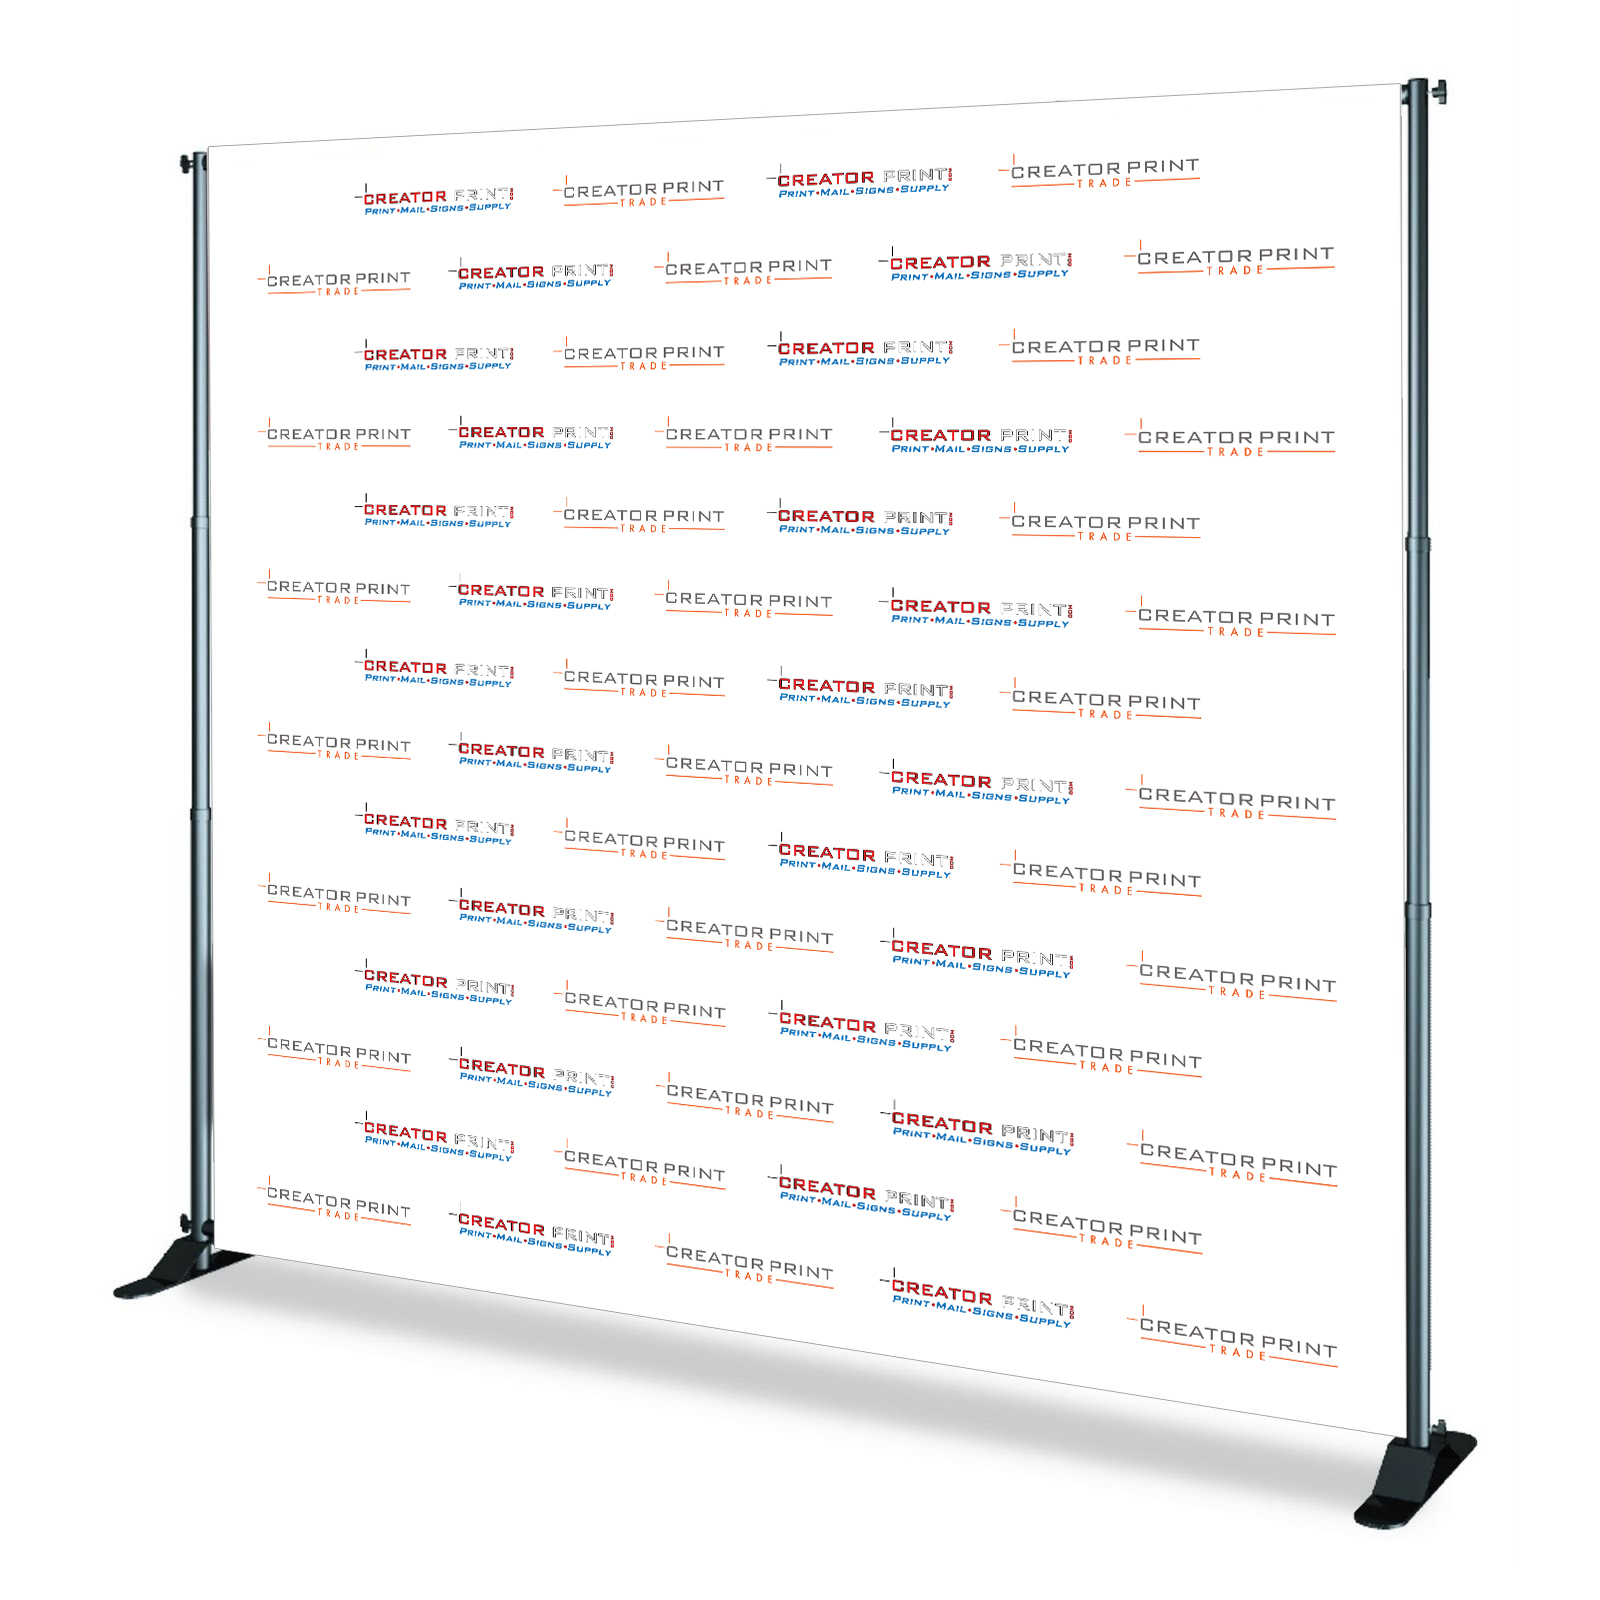 Step And Repeat Stand And Banner Printing Los Angeles Creator Print Create your own stand!various (self.stardustcrusaders). step and repeat stand and banner